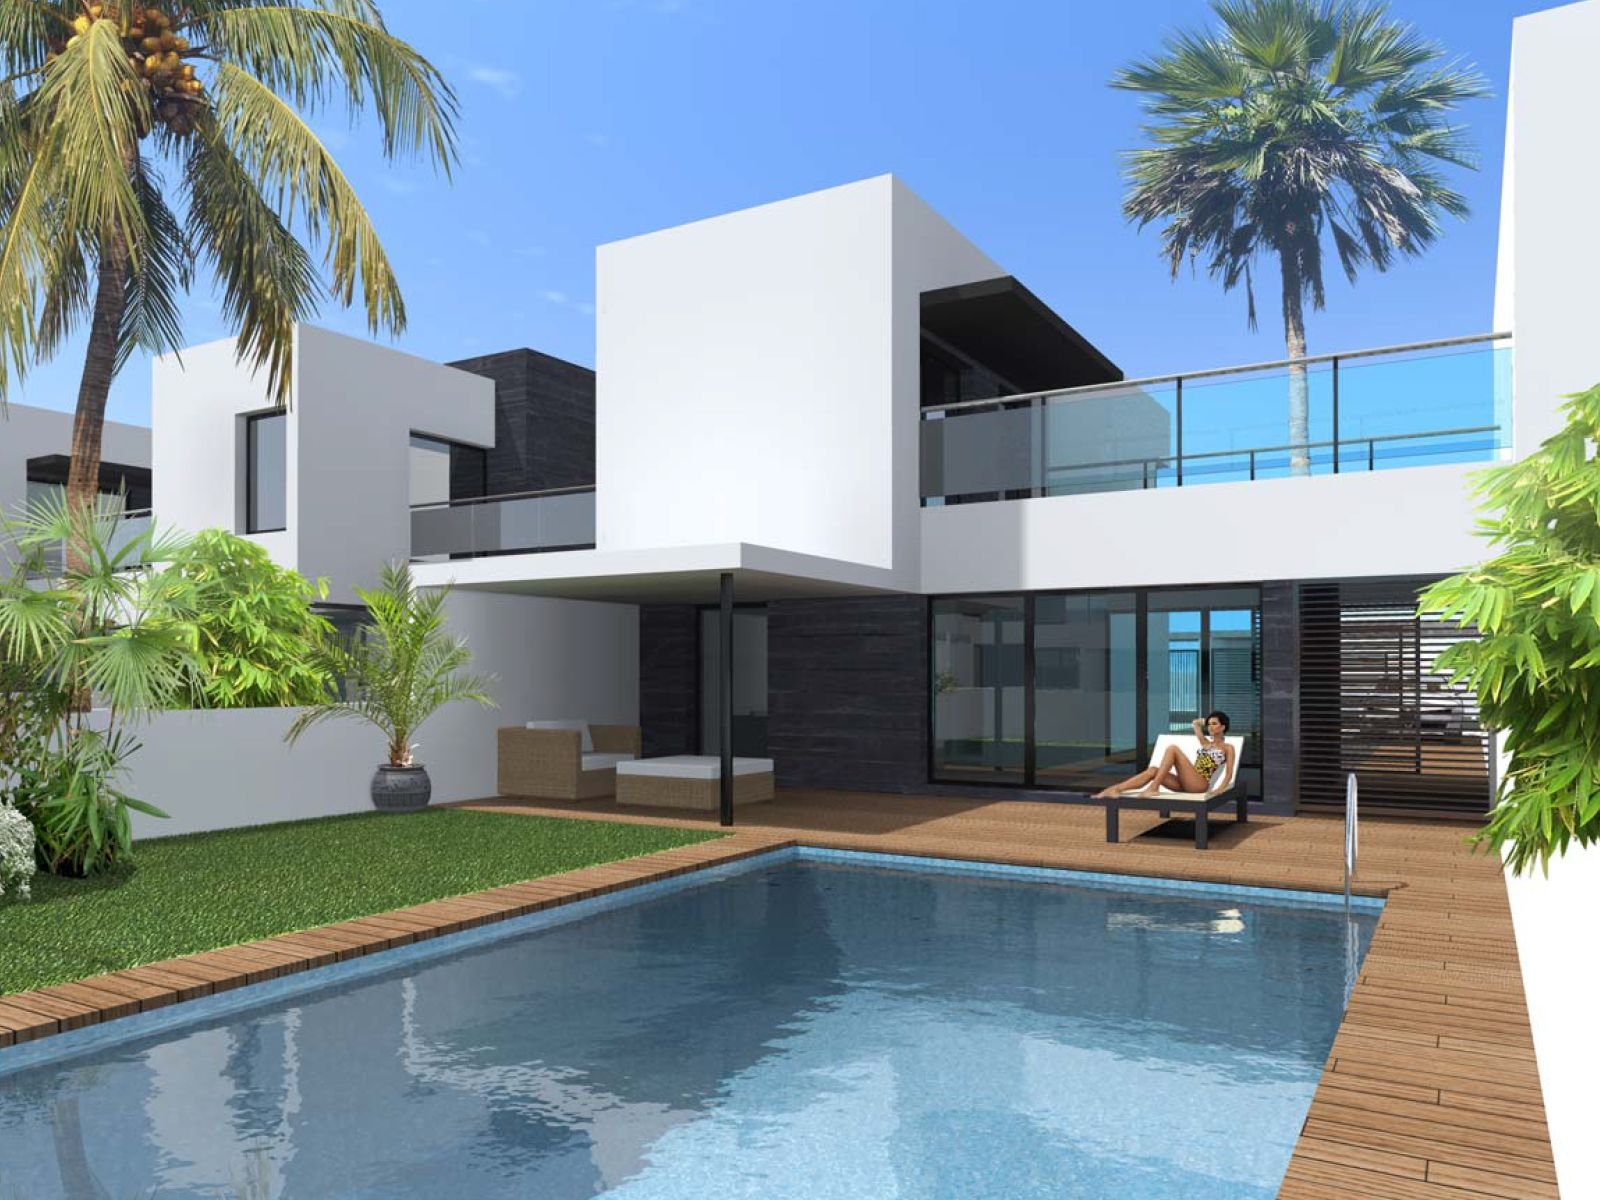 Costa Aday houses. New homes for sale in Fuerteventura